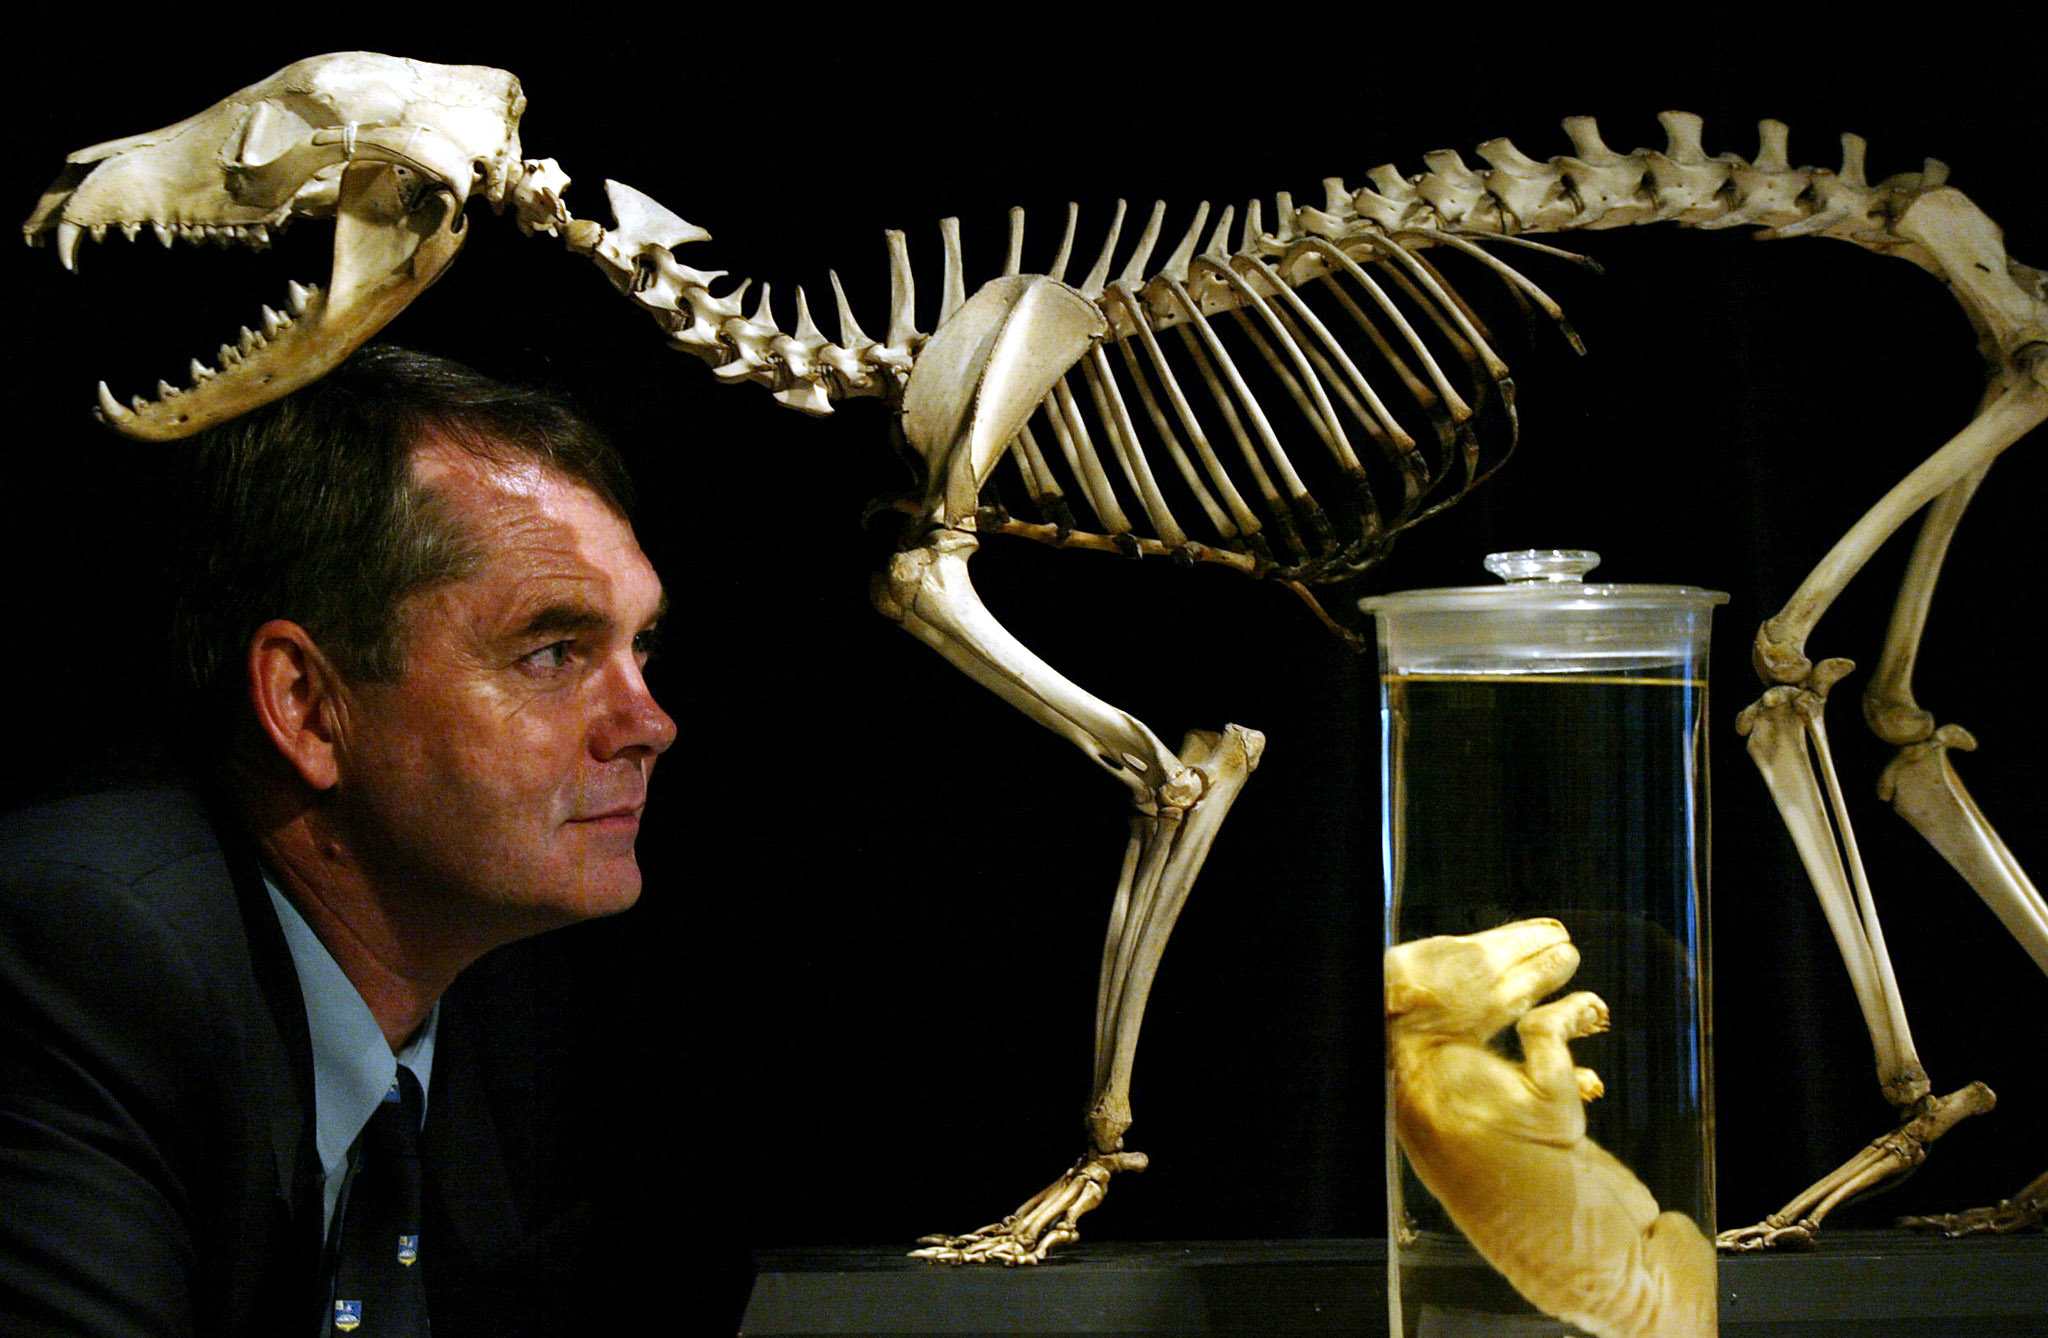 How the Mis-Measurement of the Tasmanian Tiger Led to its Extinction